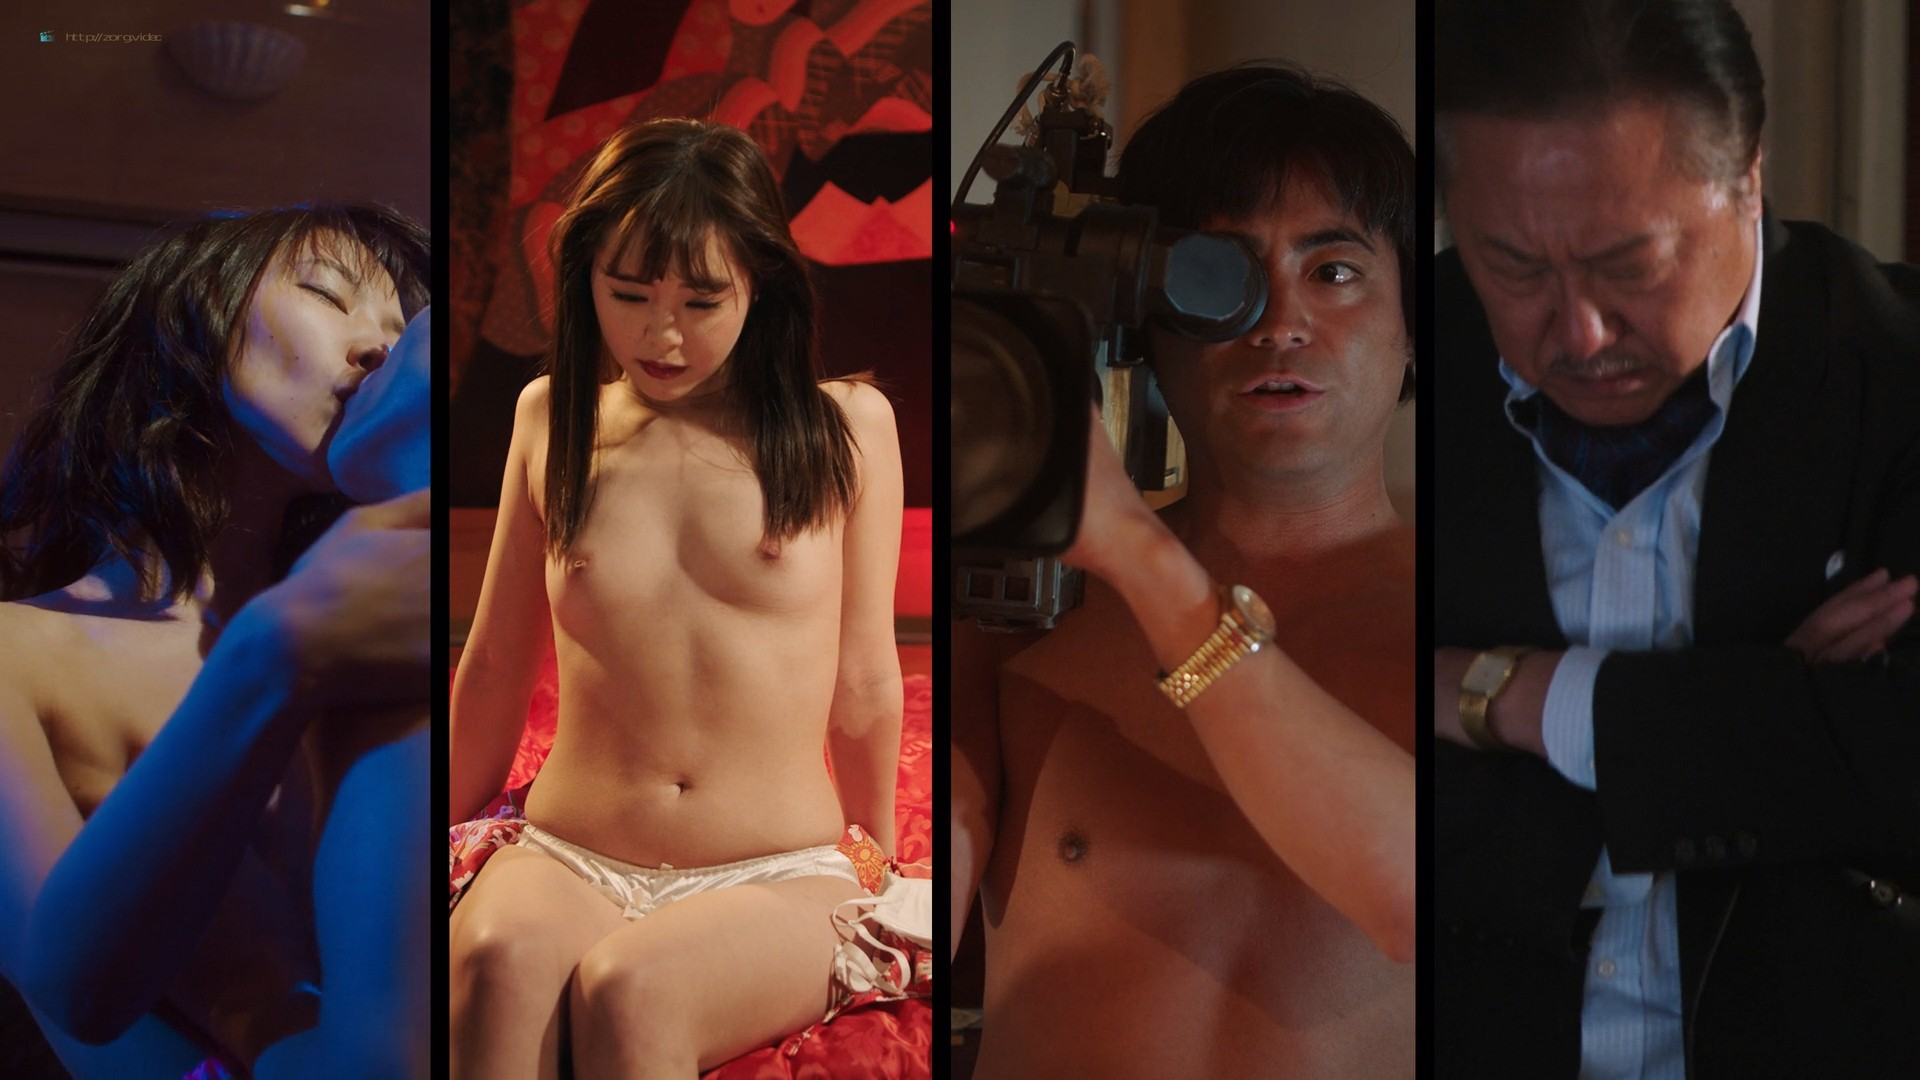 Misato Morita nude sex Nanami Kawakami and others nude - The Naked Director (2019) s1e7e8 HD 1080p Web (9)